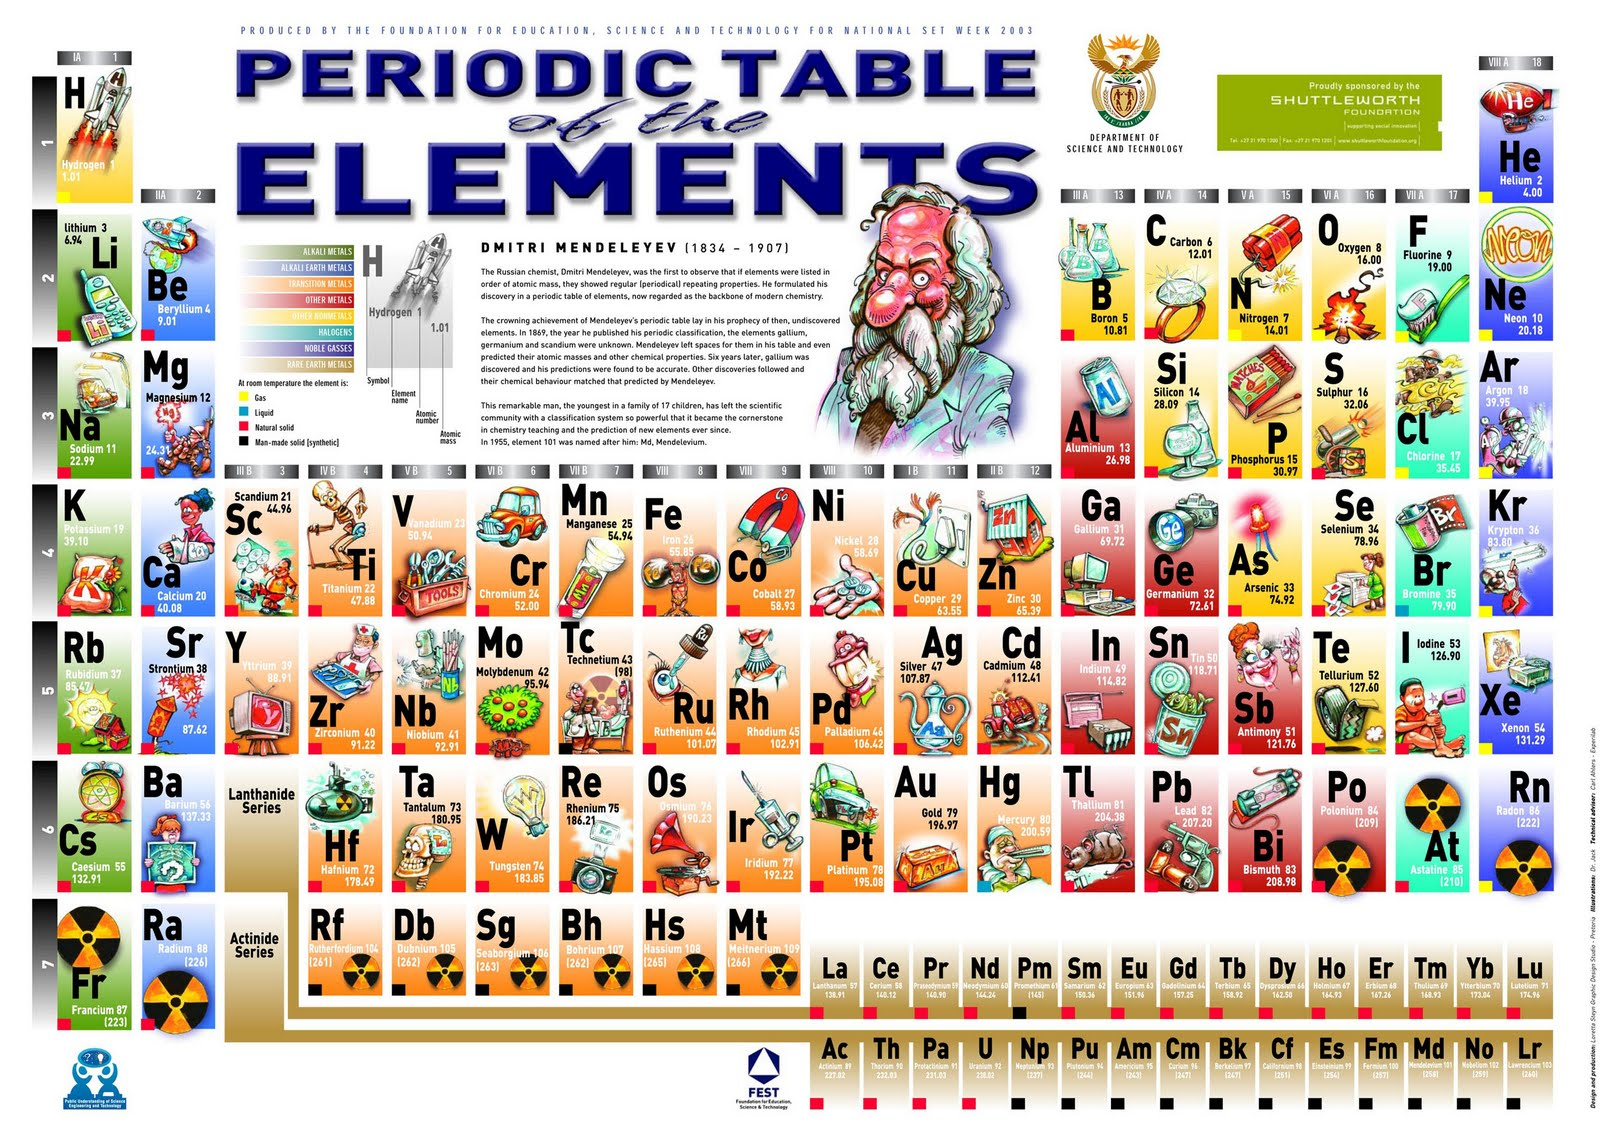 Periodic table of elements sodium periodic table of elements table sodium periodic case of table files the 253 periodic case the elements gamestrikefo Image collections